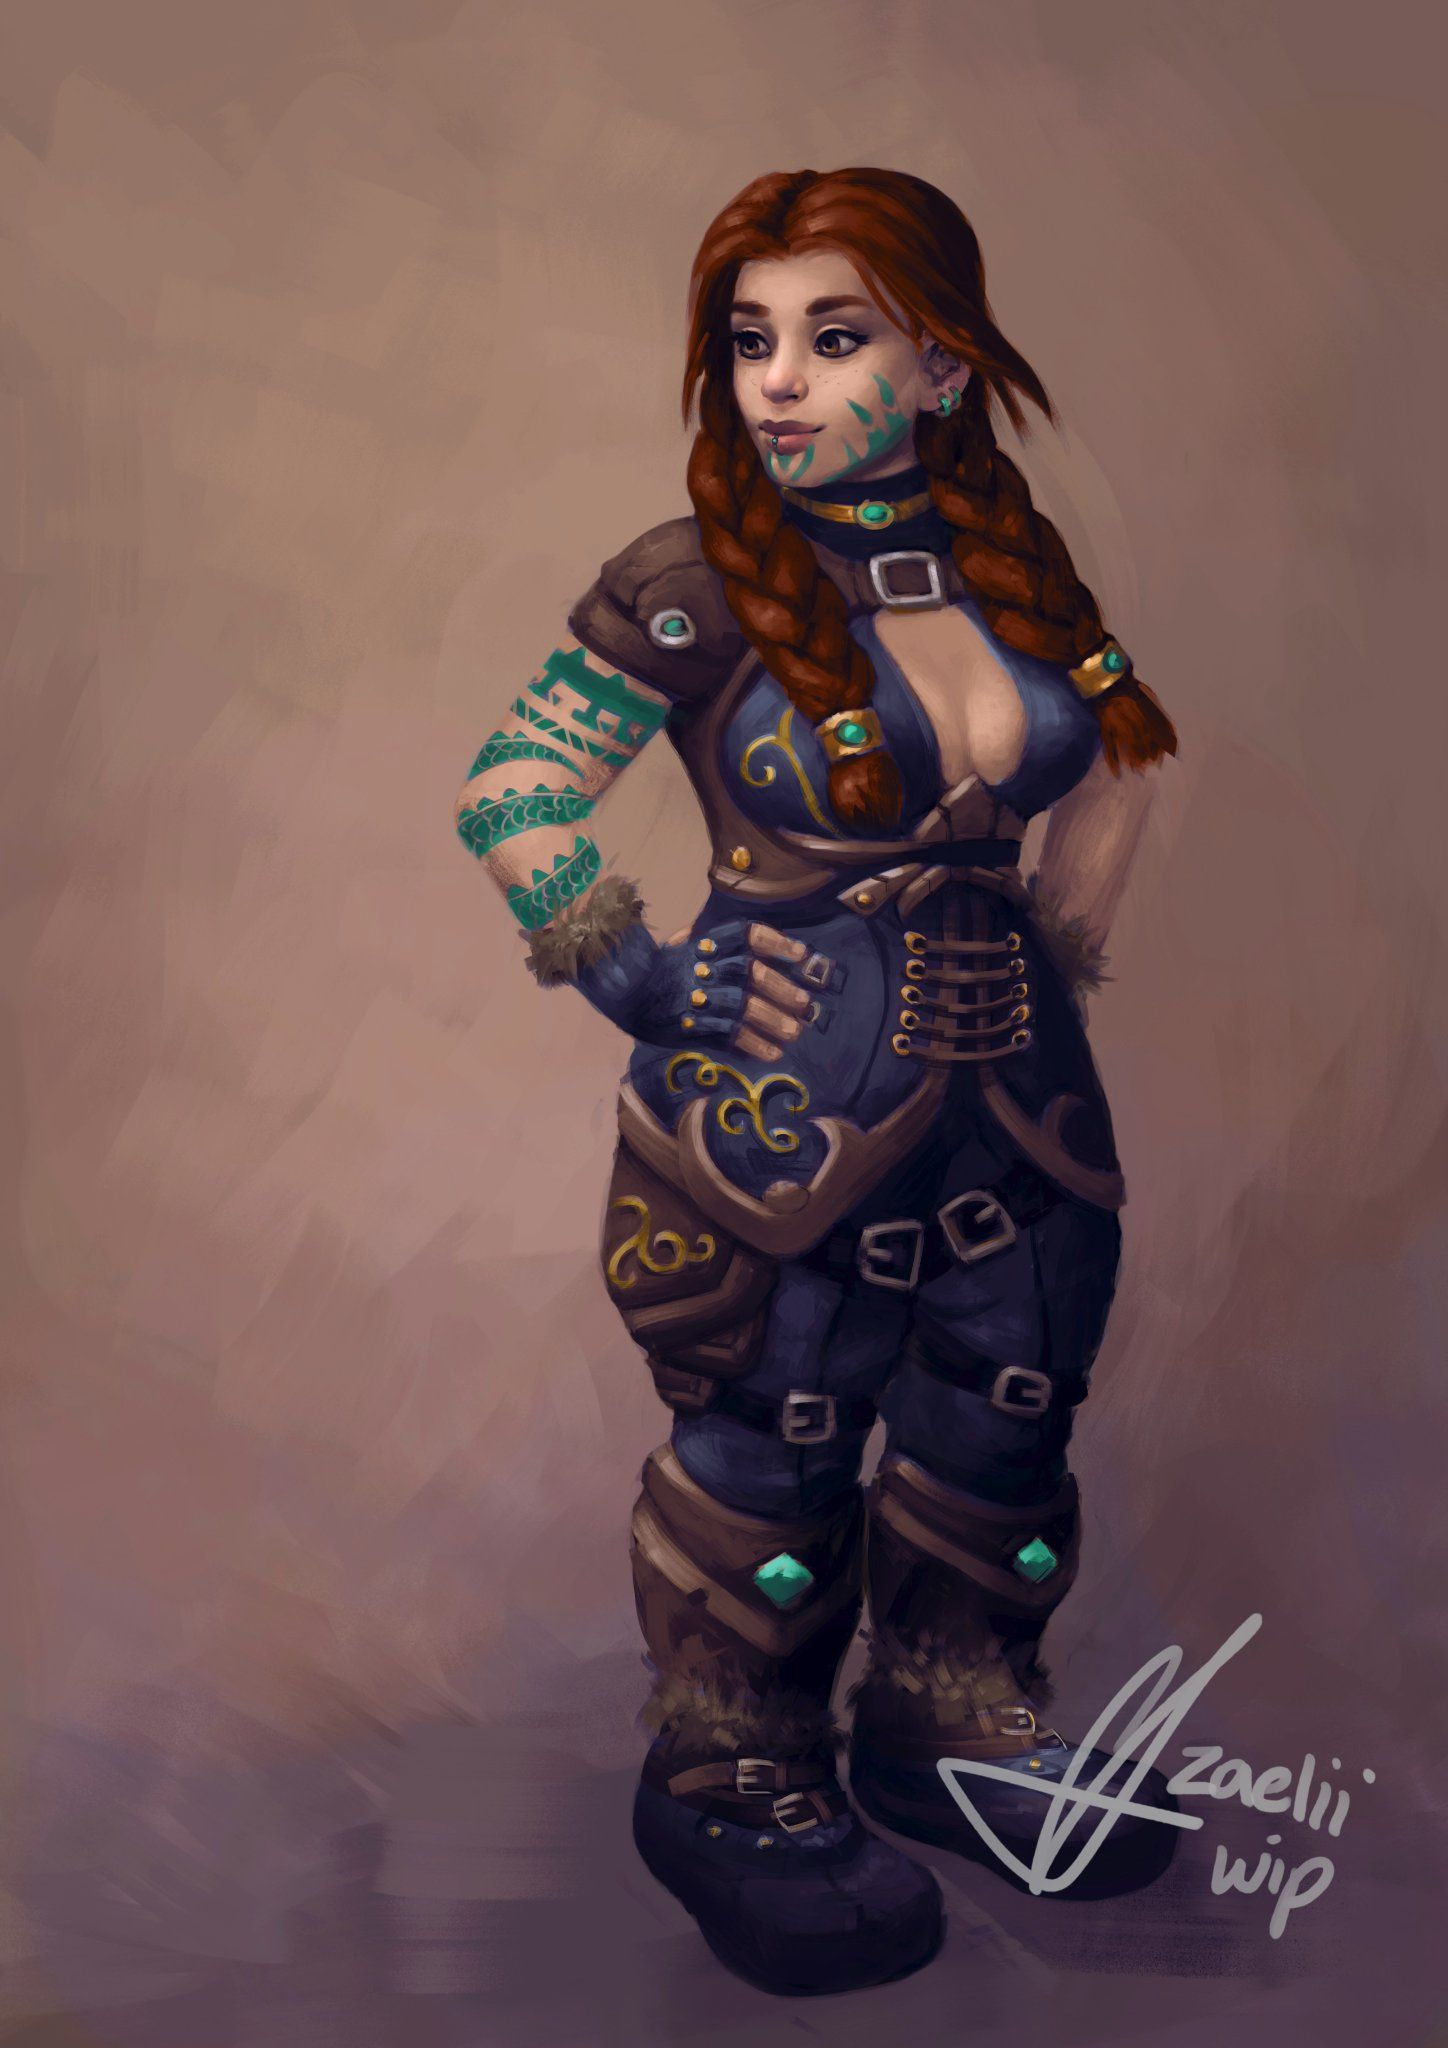 This Concept Art Makes Me Want To Play Dwarf Female Which Has Never